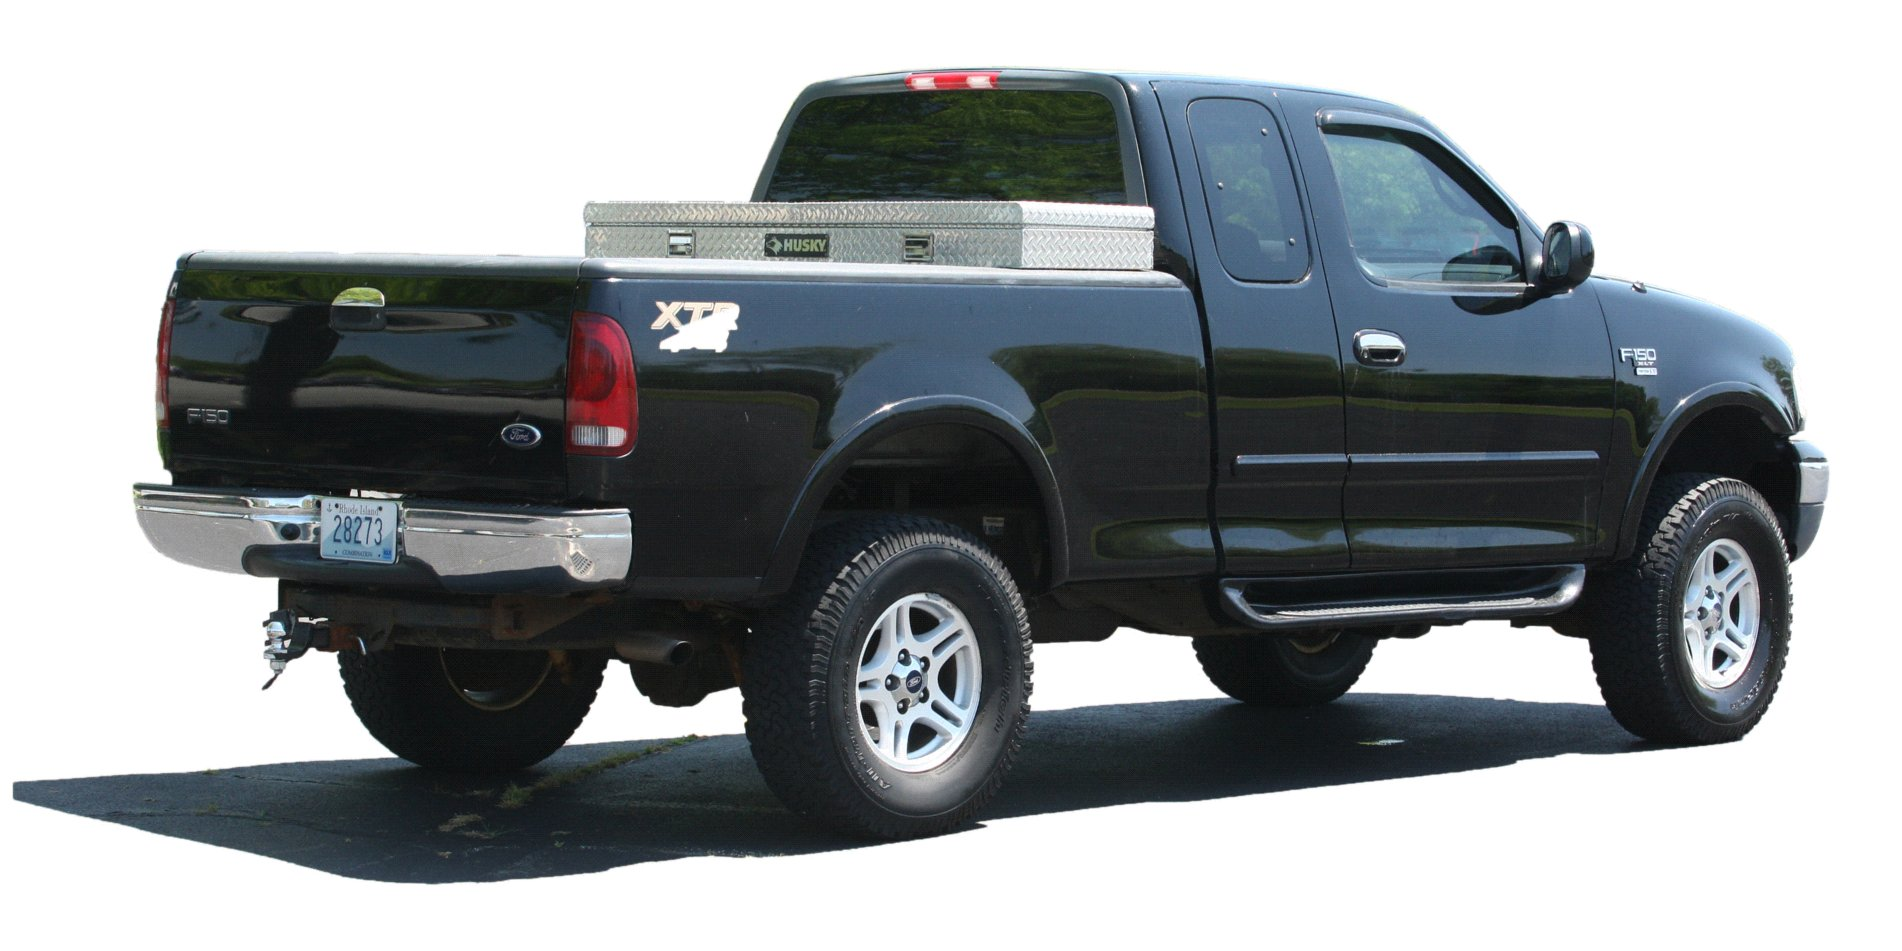 2001 ford f 150 image 4